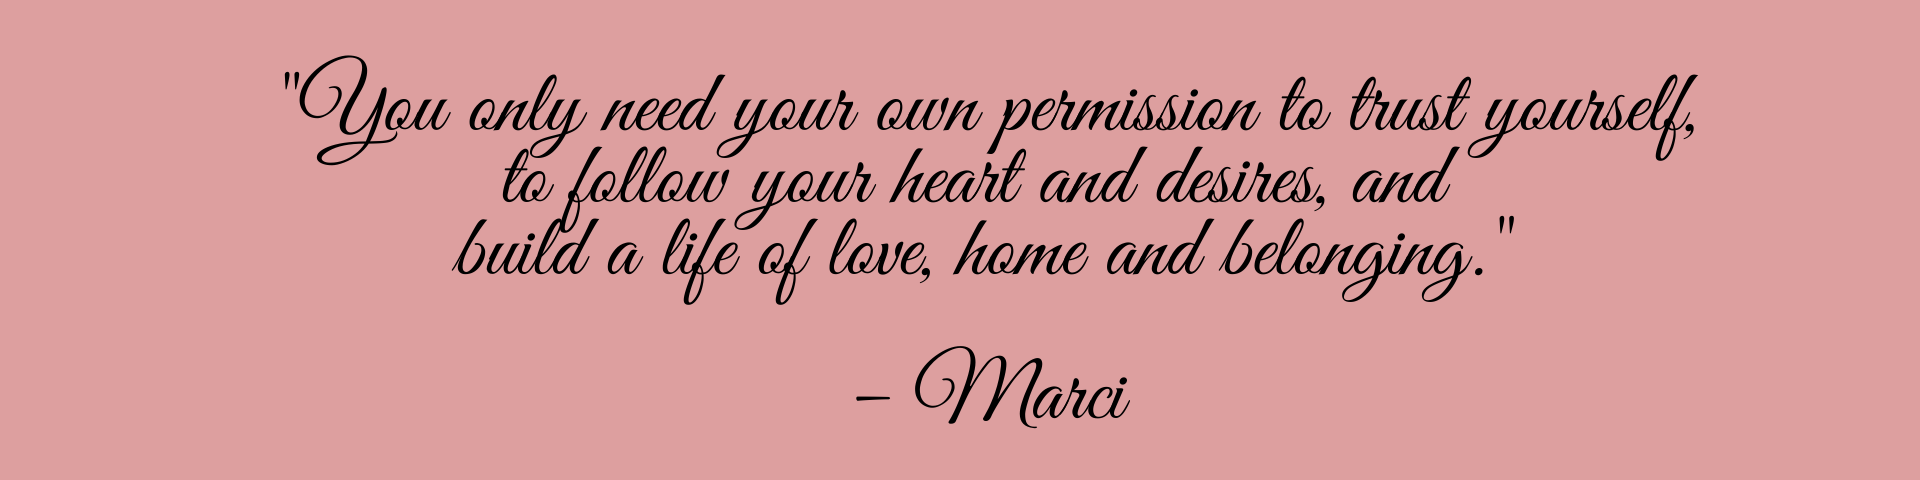 Only you can give yourself permission to trust yourself, permission to follow your heart and desires, and build a life of love, home and belonging. –Marci